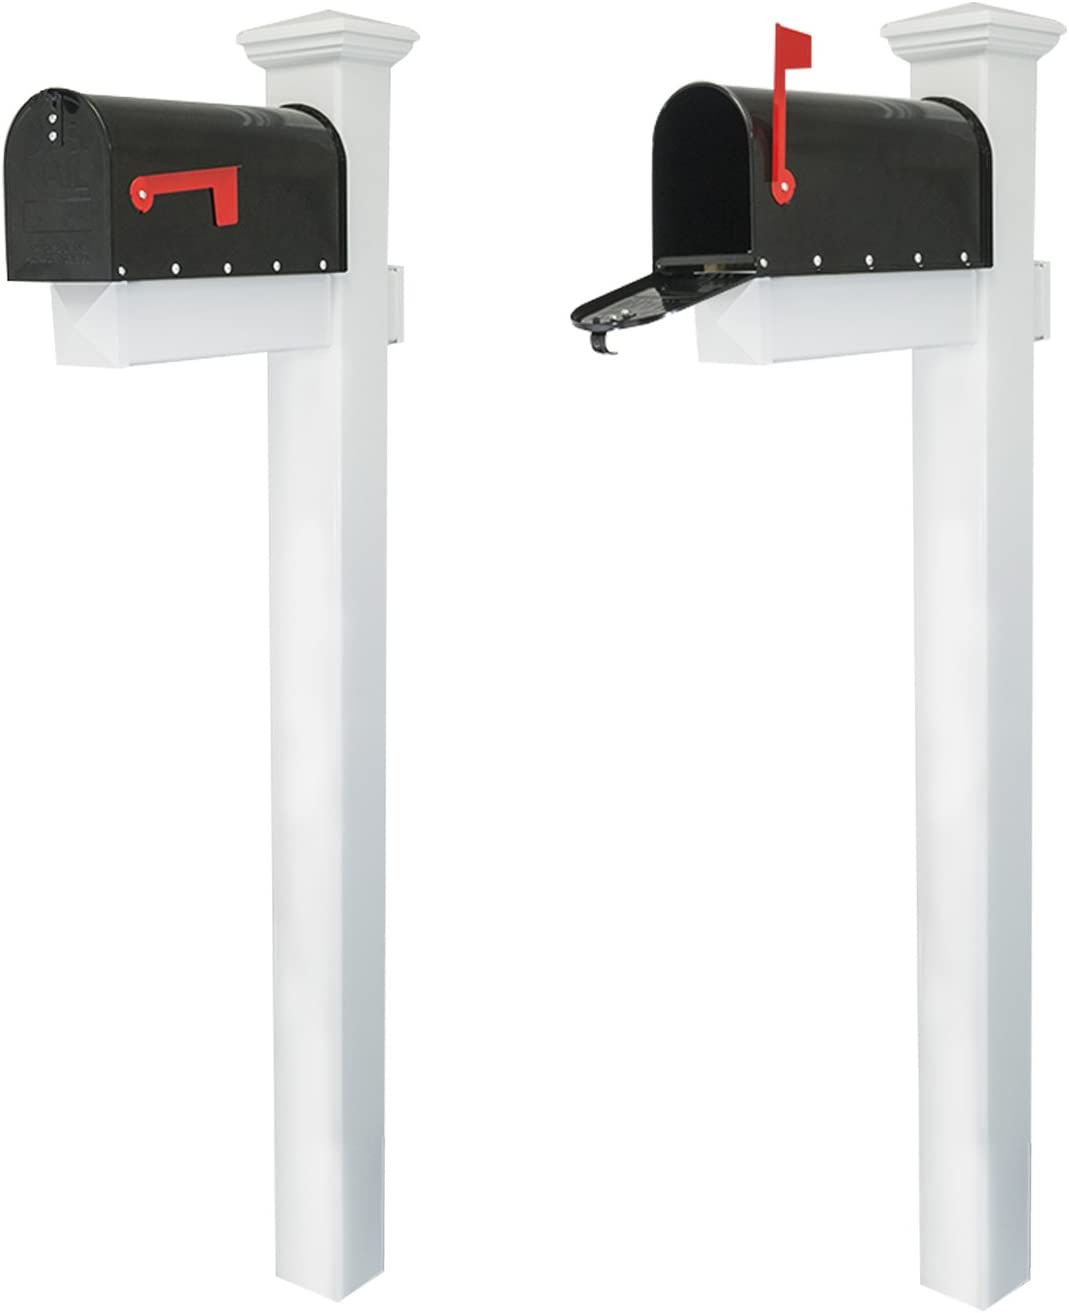 Houseables Mailbox and Post Kit, Decorative Mail Box Included, W